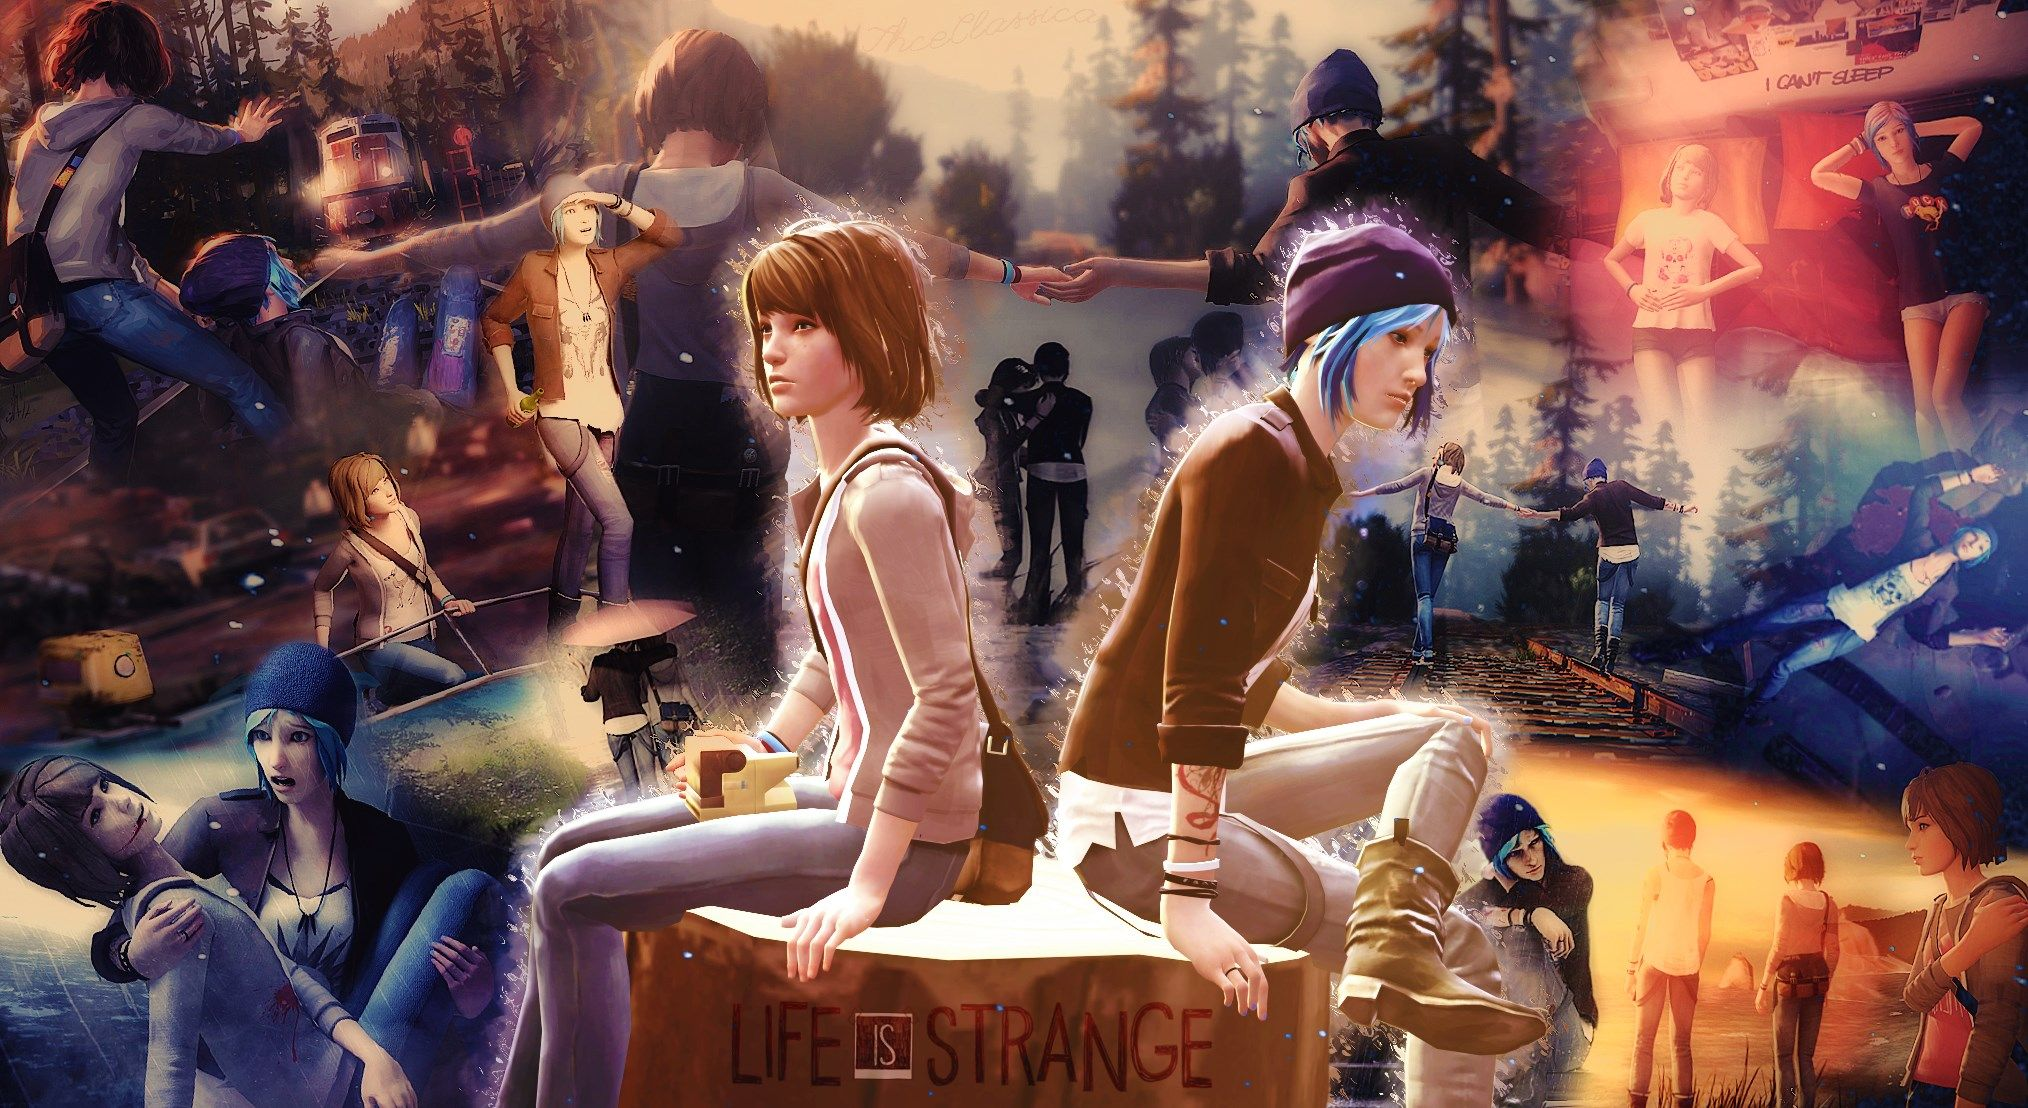 Life Is Strange Max Caulfield Chloe Price 1080p Wallpaper Hdwallpaper Desktop Life Is Strange Chloe Price Dontnod Entertainment